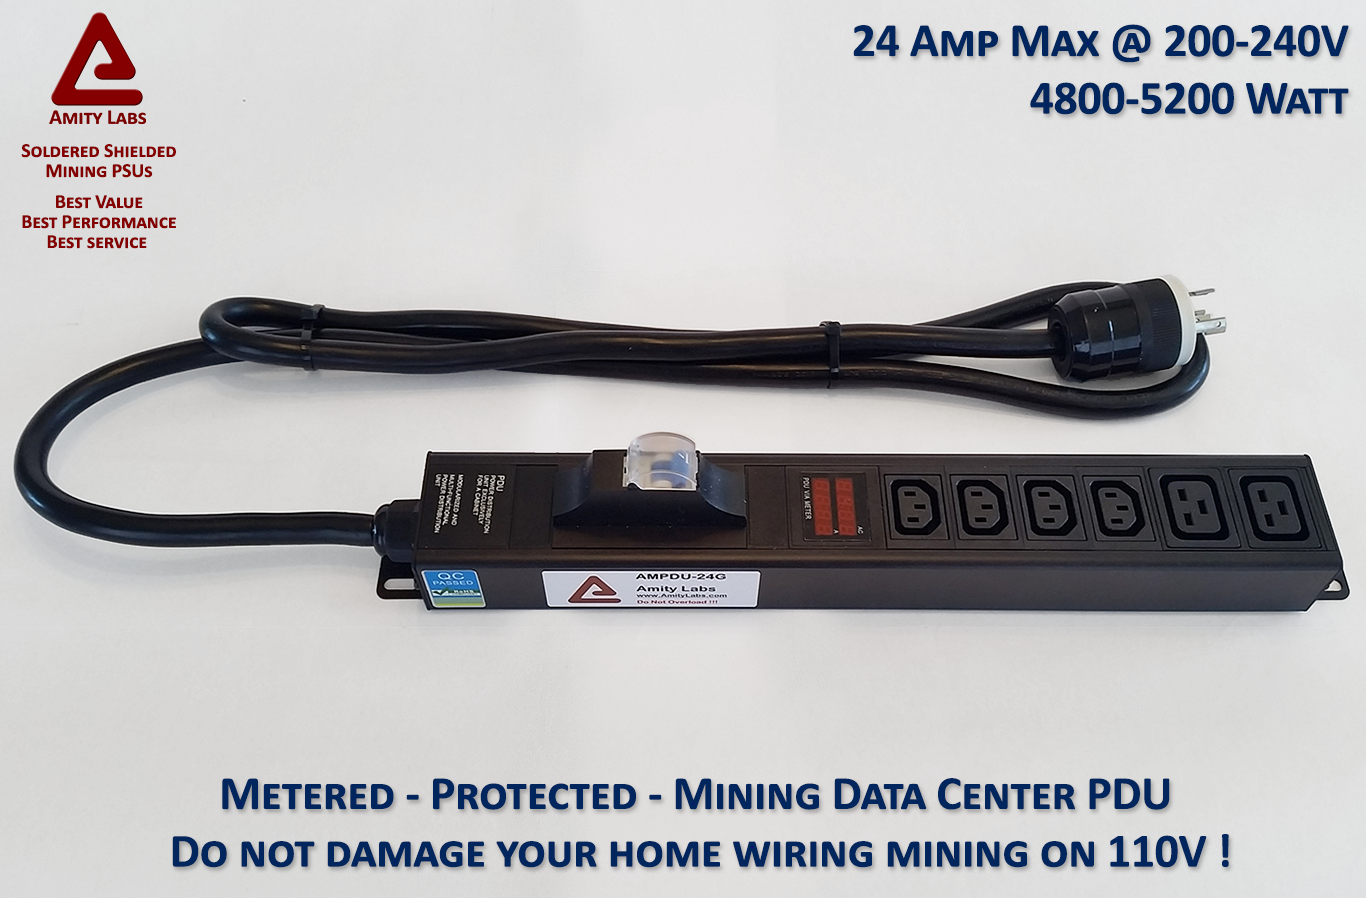 Optimized Cryptocurrency Mining PDU - Six 220V Outlets and VA Meter